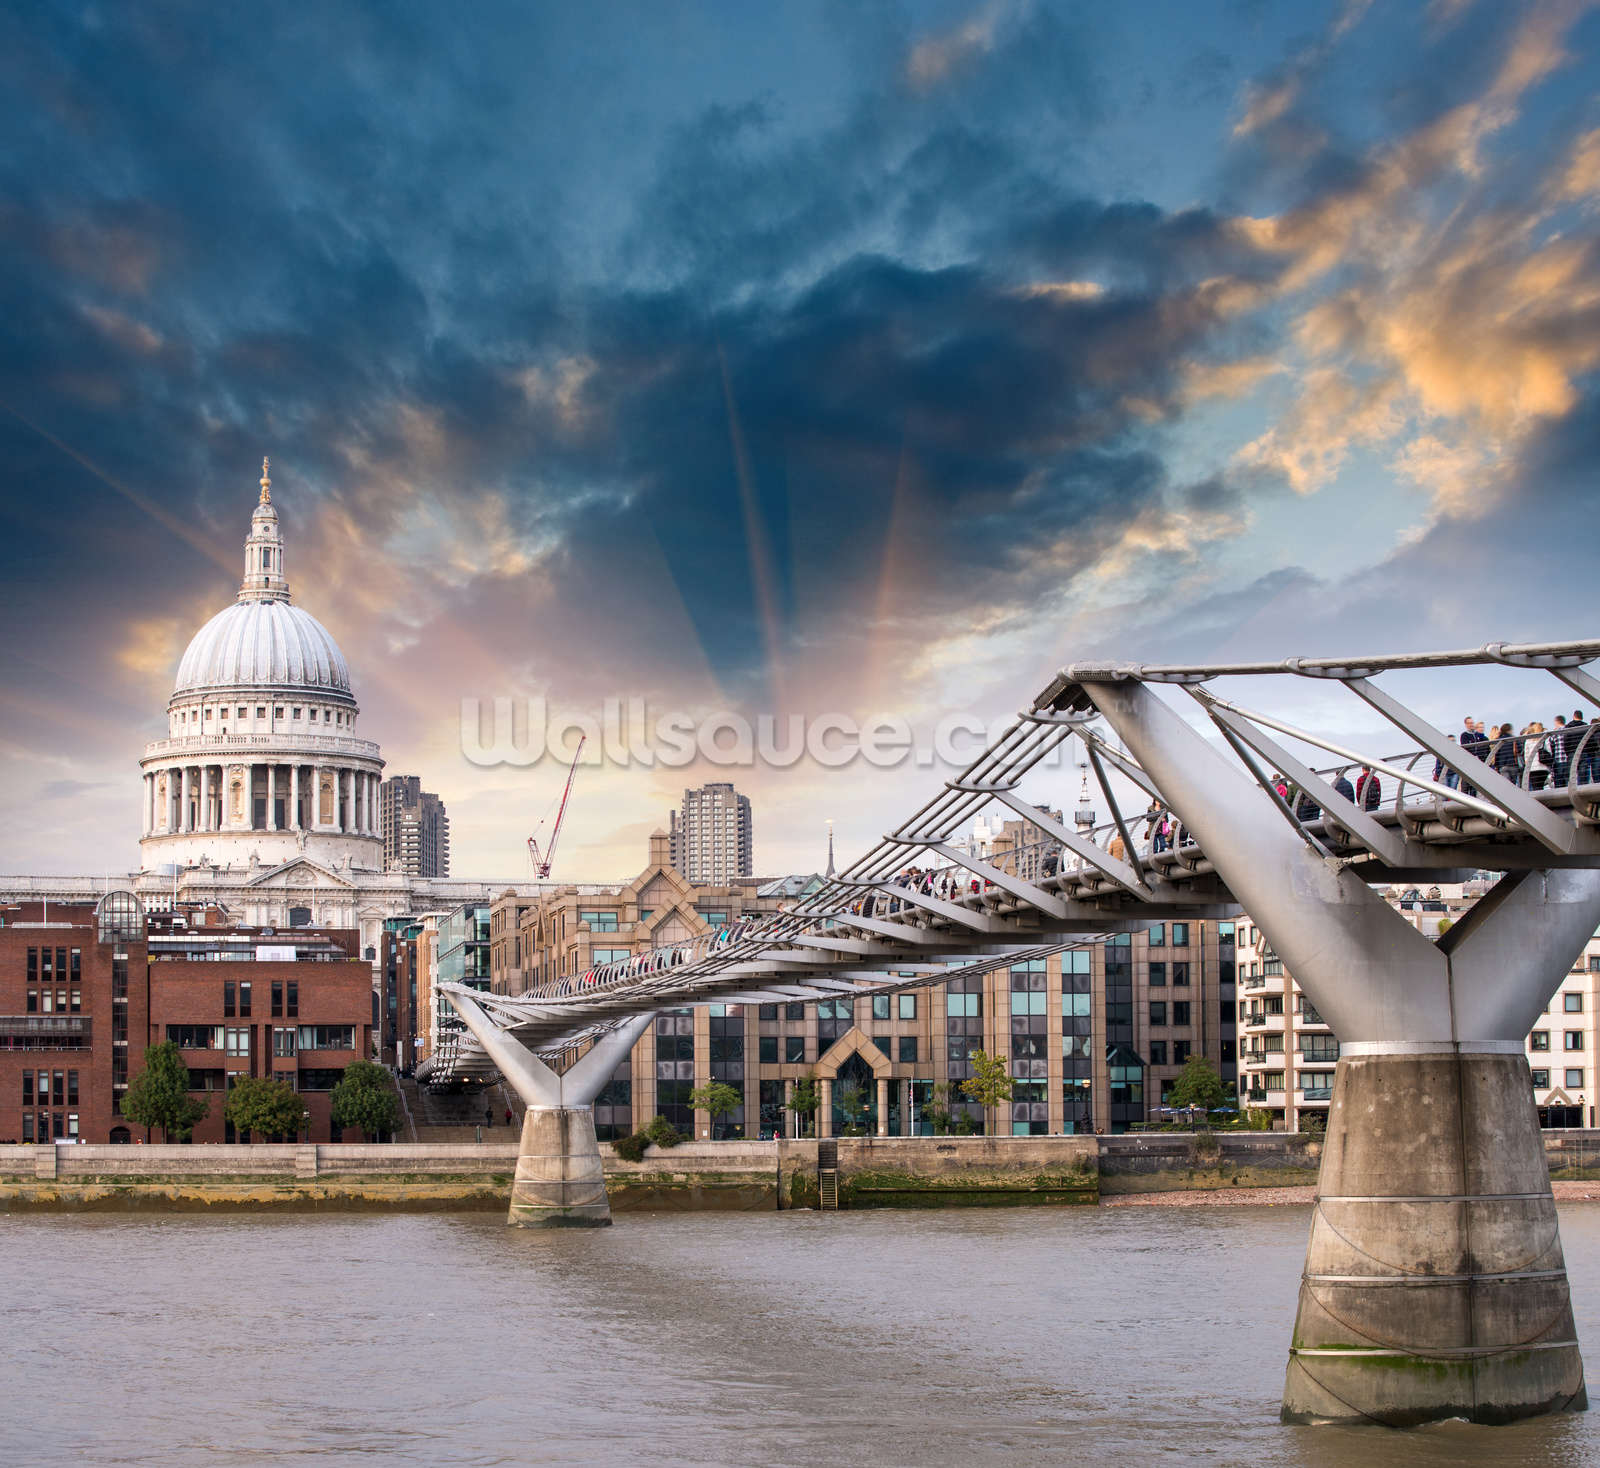 Millennium bridge london wallpaper wall mural wallsauce usa millennium bridge london wall mural photo wallpaper amipublicfo Choice Image